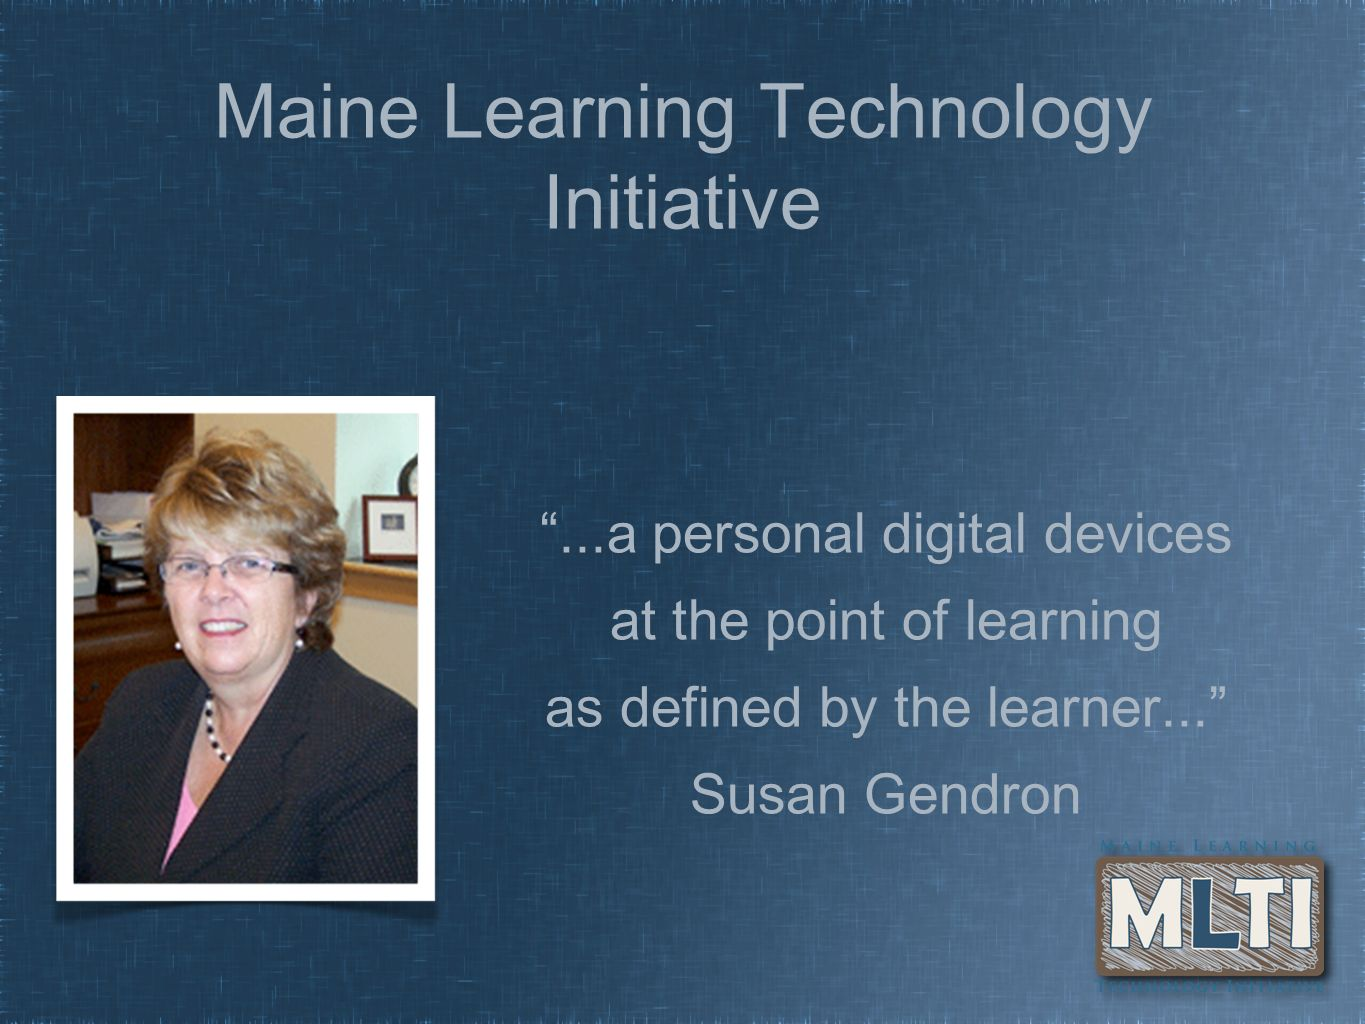 Maine Learning Technology Initiative...a personal digital devices at the point of learning as defined by the learner...